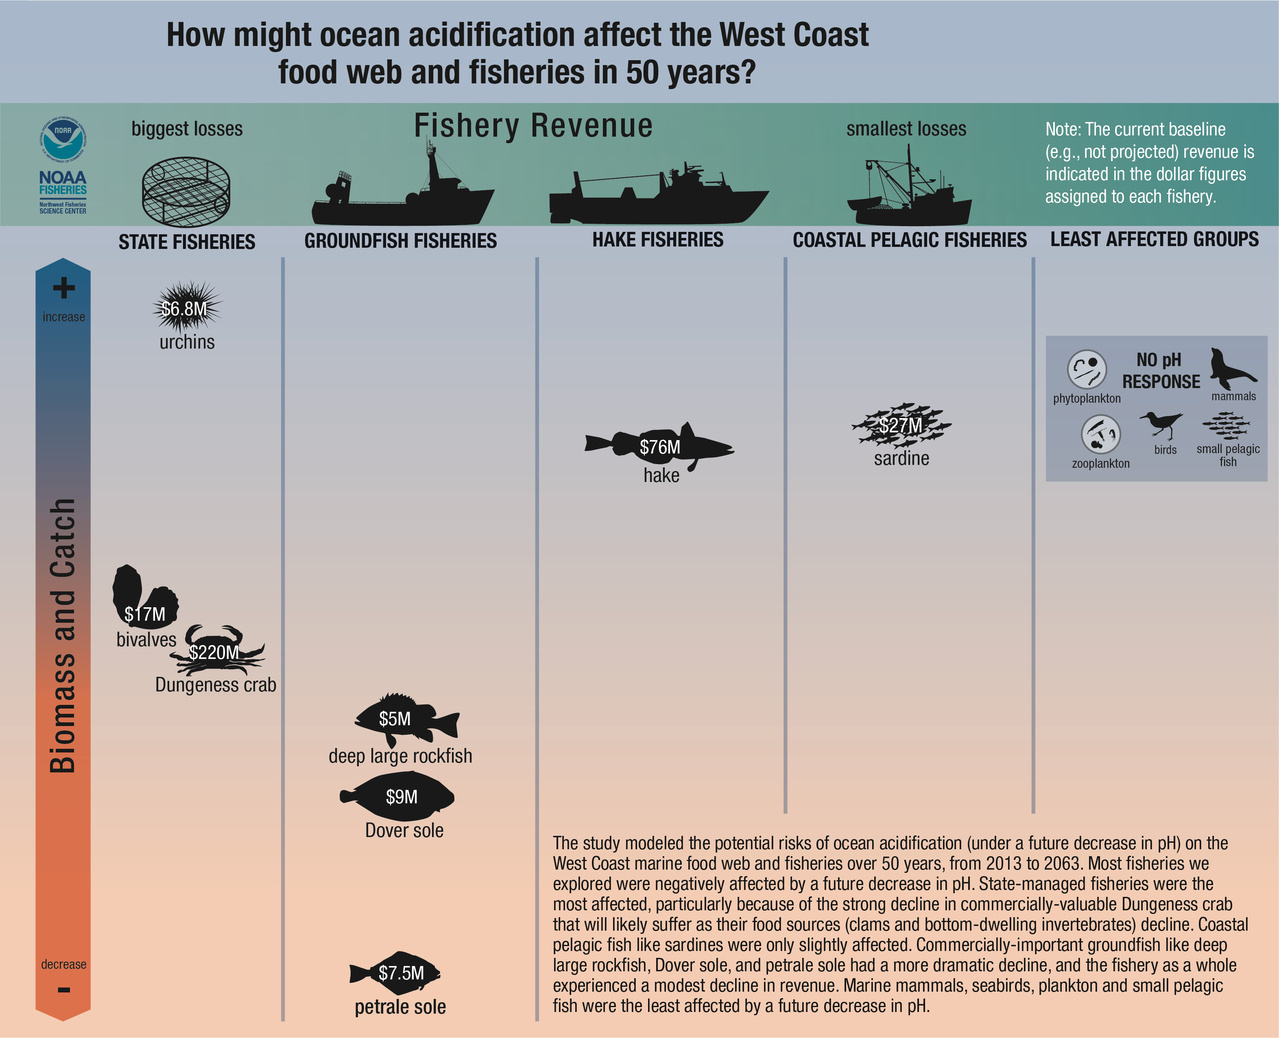 diagram showing the potential risks of ocean acidification on the West Coast for 2013-2063